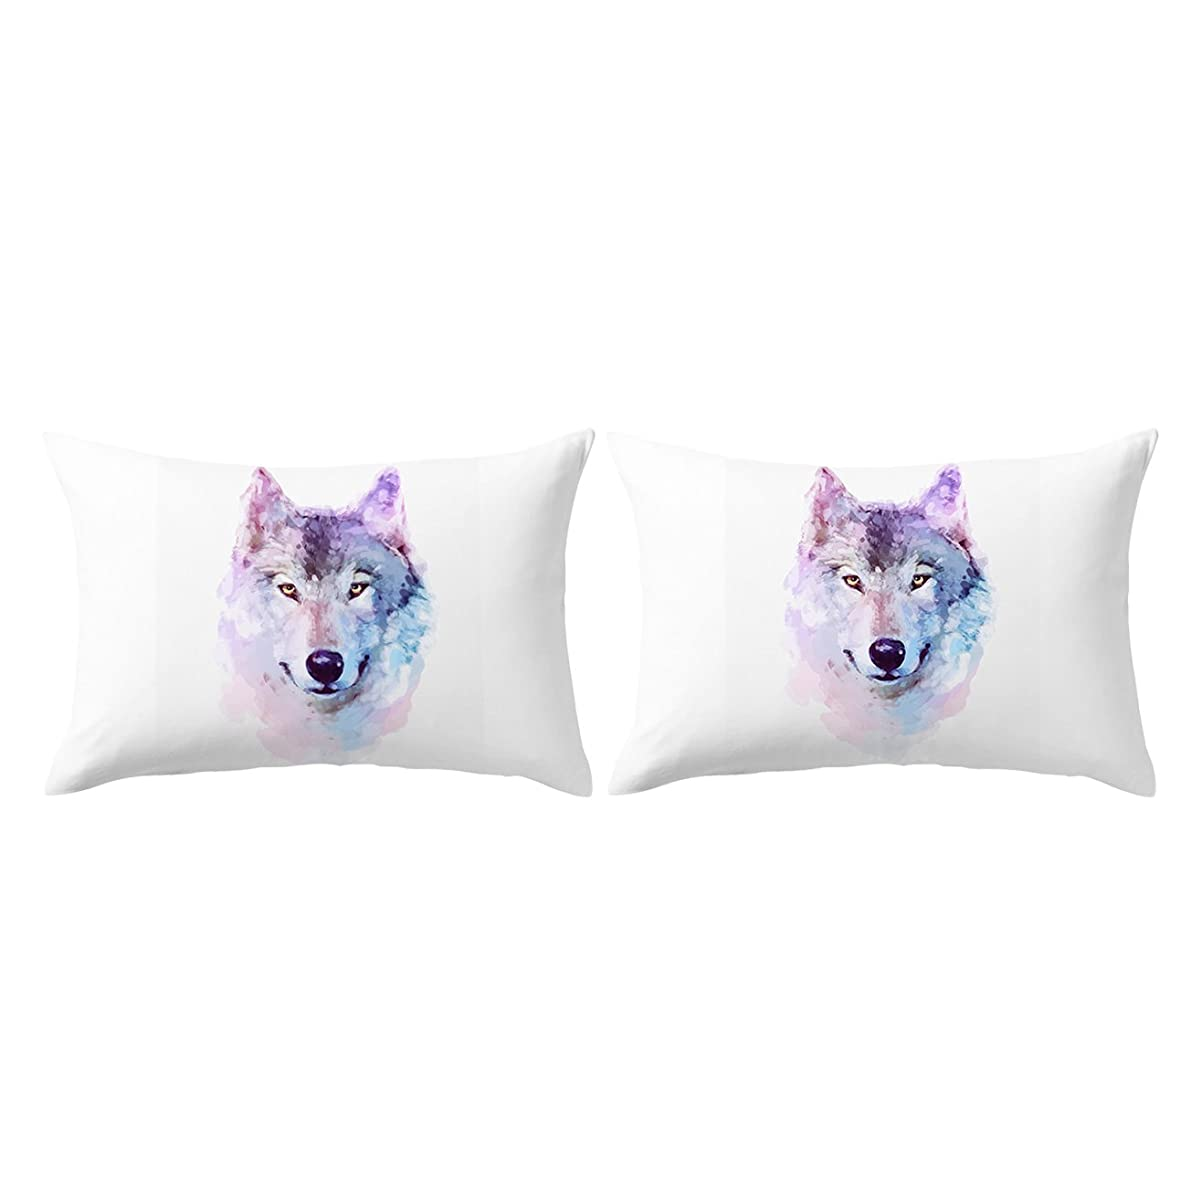 ARIGHTEX Wolf Pillow Cases 3D White Watercolor Pillow Cover Wolf Face Art Animal Pillow Covers Set of 2 (Artistic, Standard 20